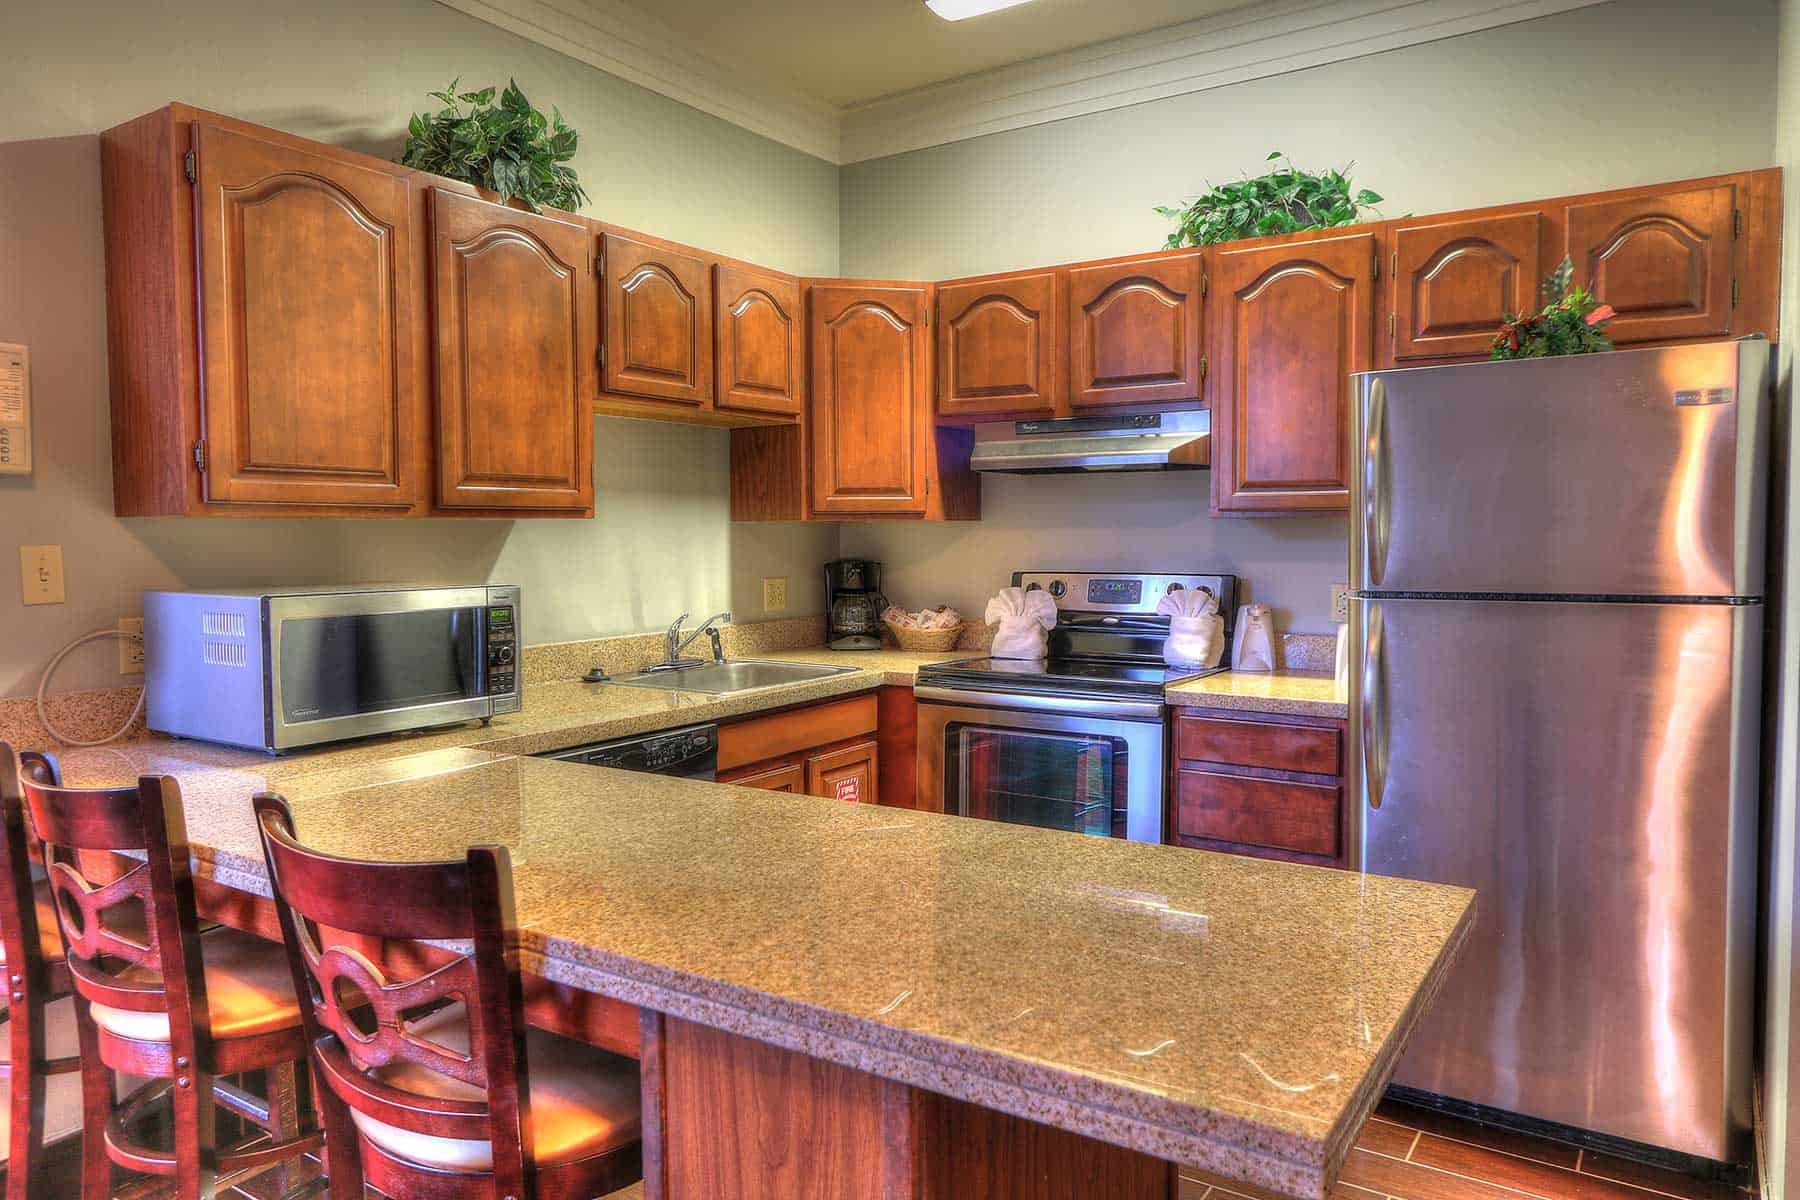 kitchen in penthouse suite at Gatlinburg Tn hotel